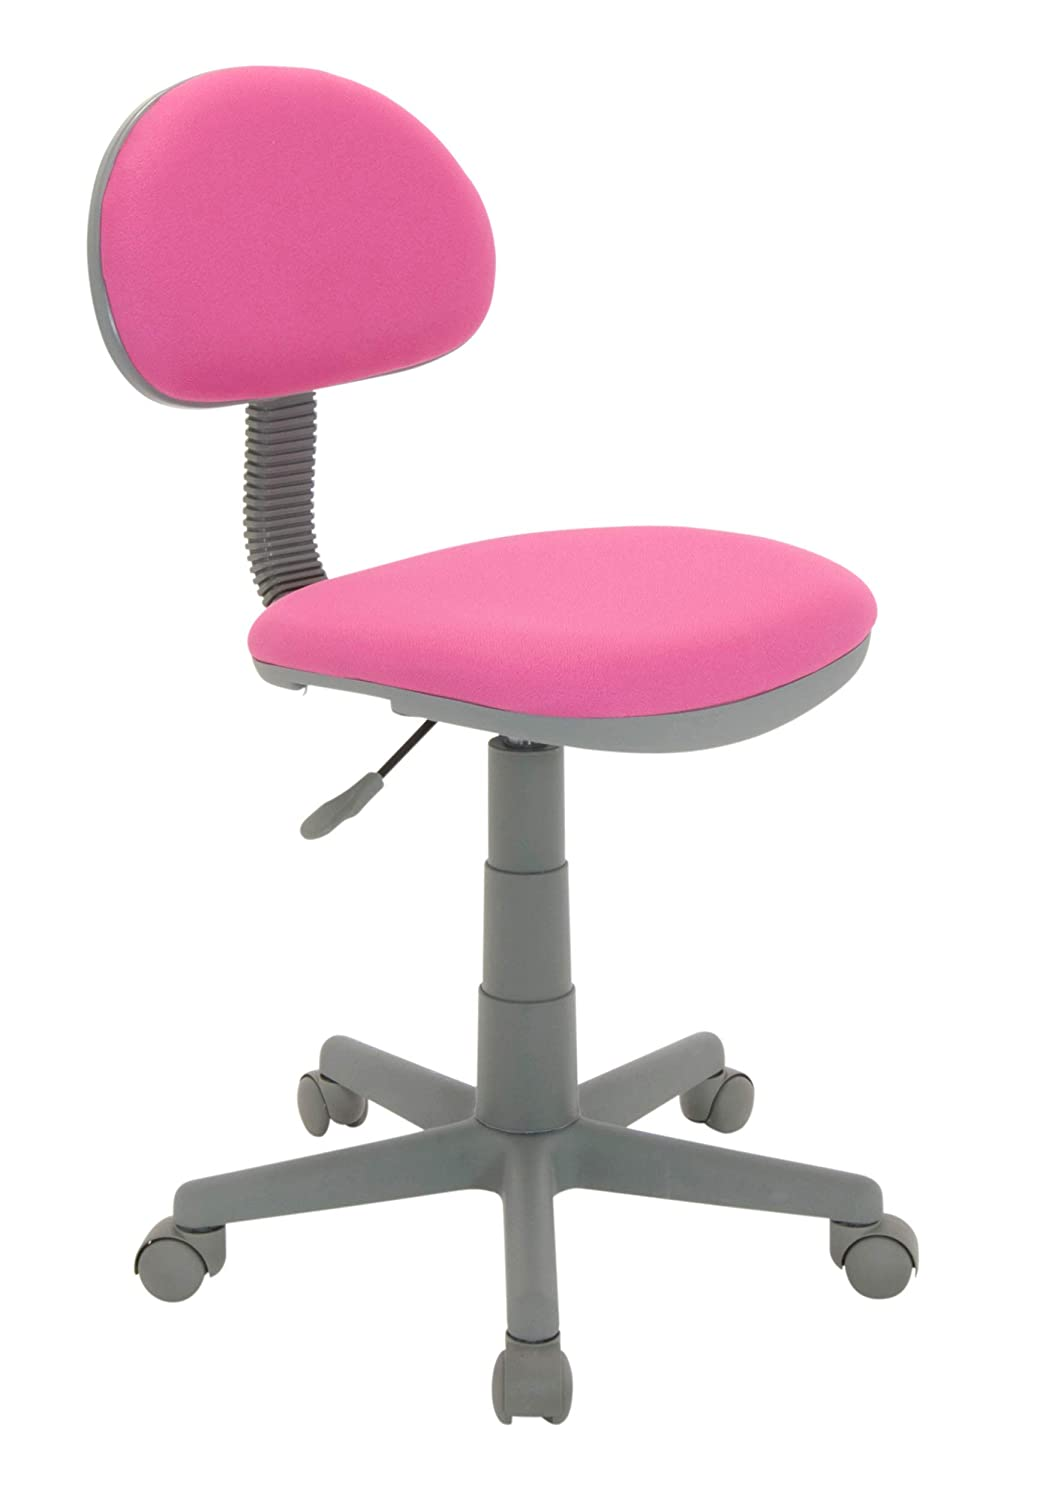 Remarkable Calico Designs Deluxe Task Chair In Pink With Gray Base 18510 Dailytribune Chair Design For Home Dailytribuneorg